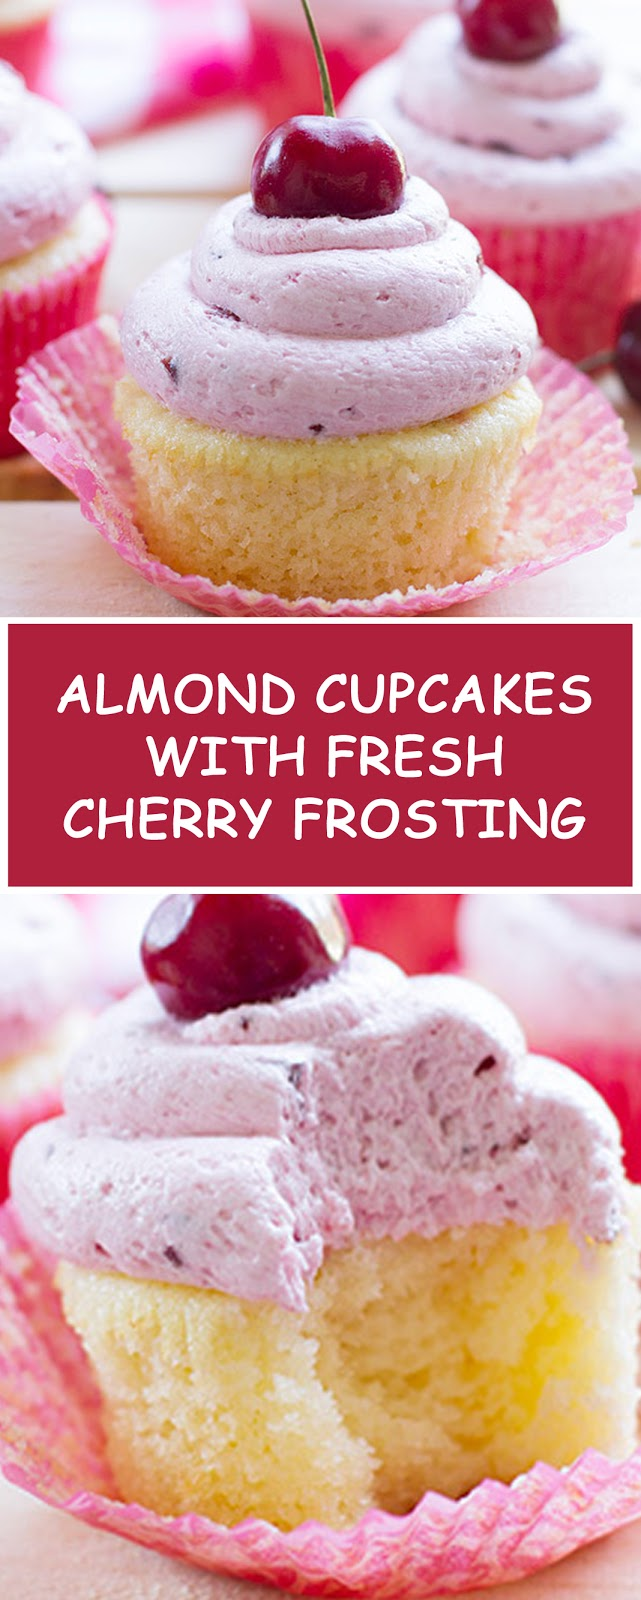 Almond Cupcakes with Fresh Cherry Frosting